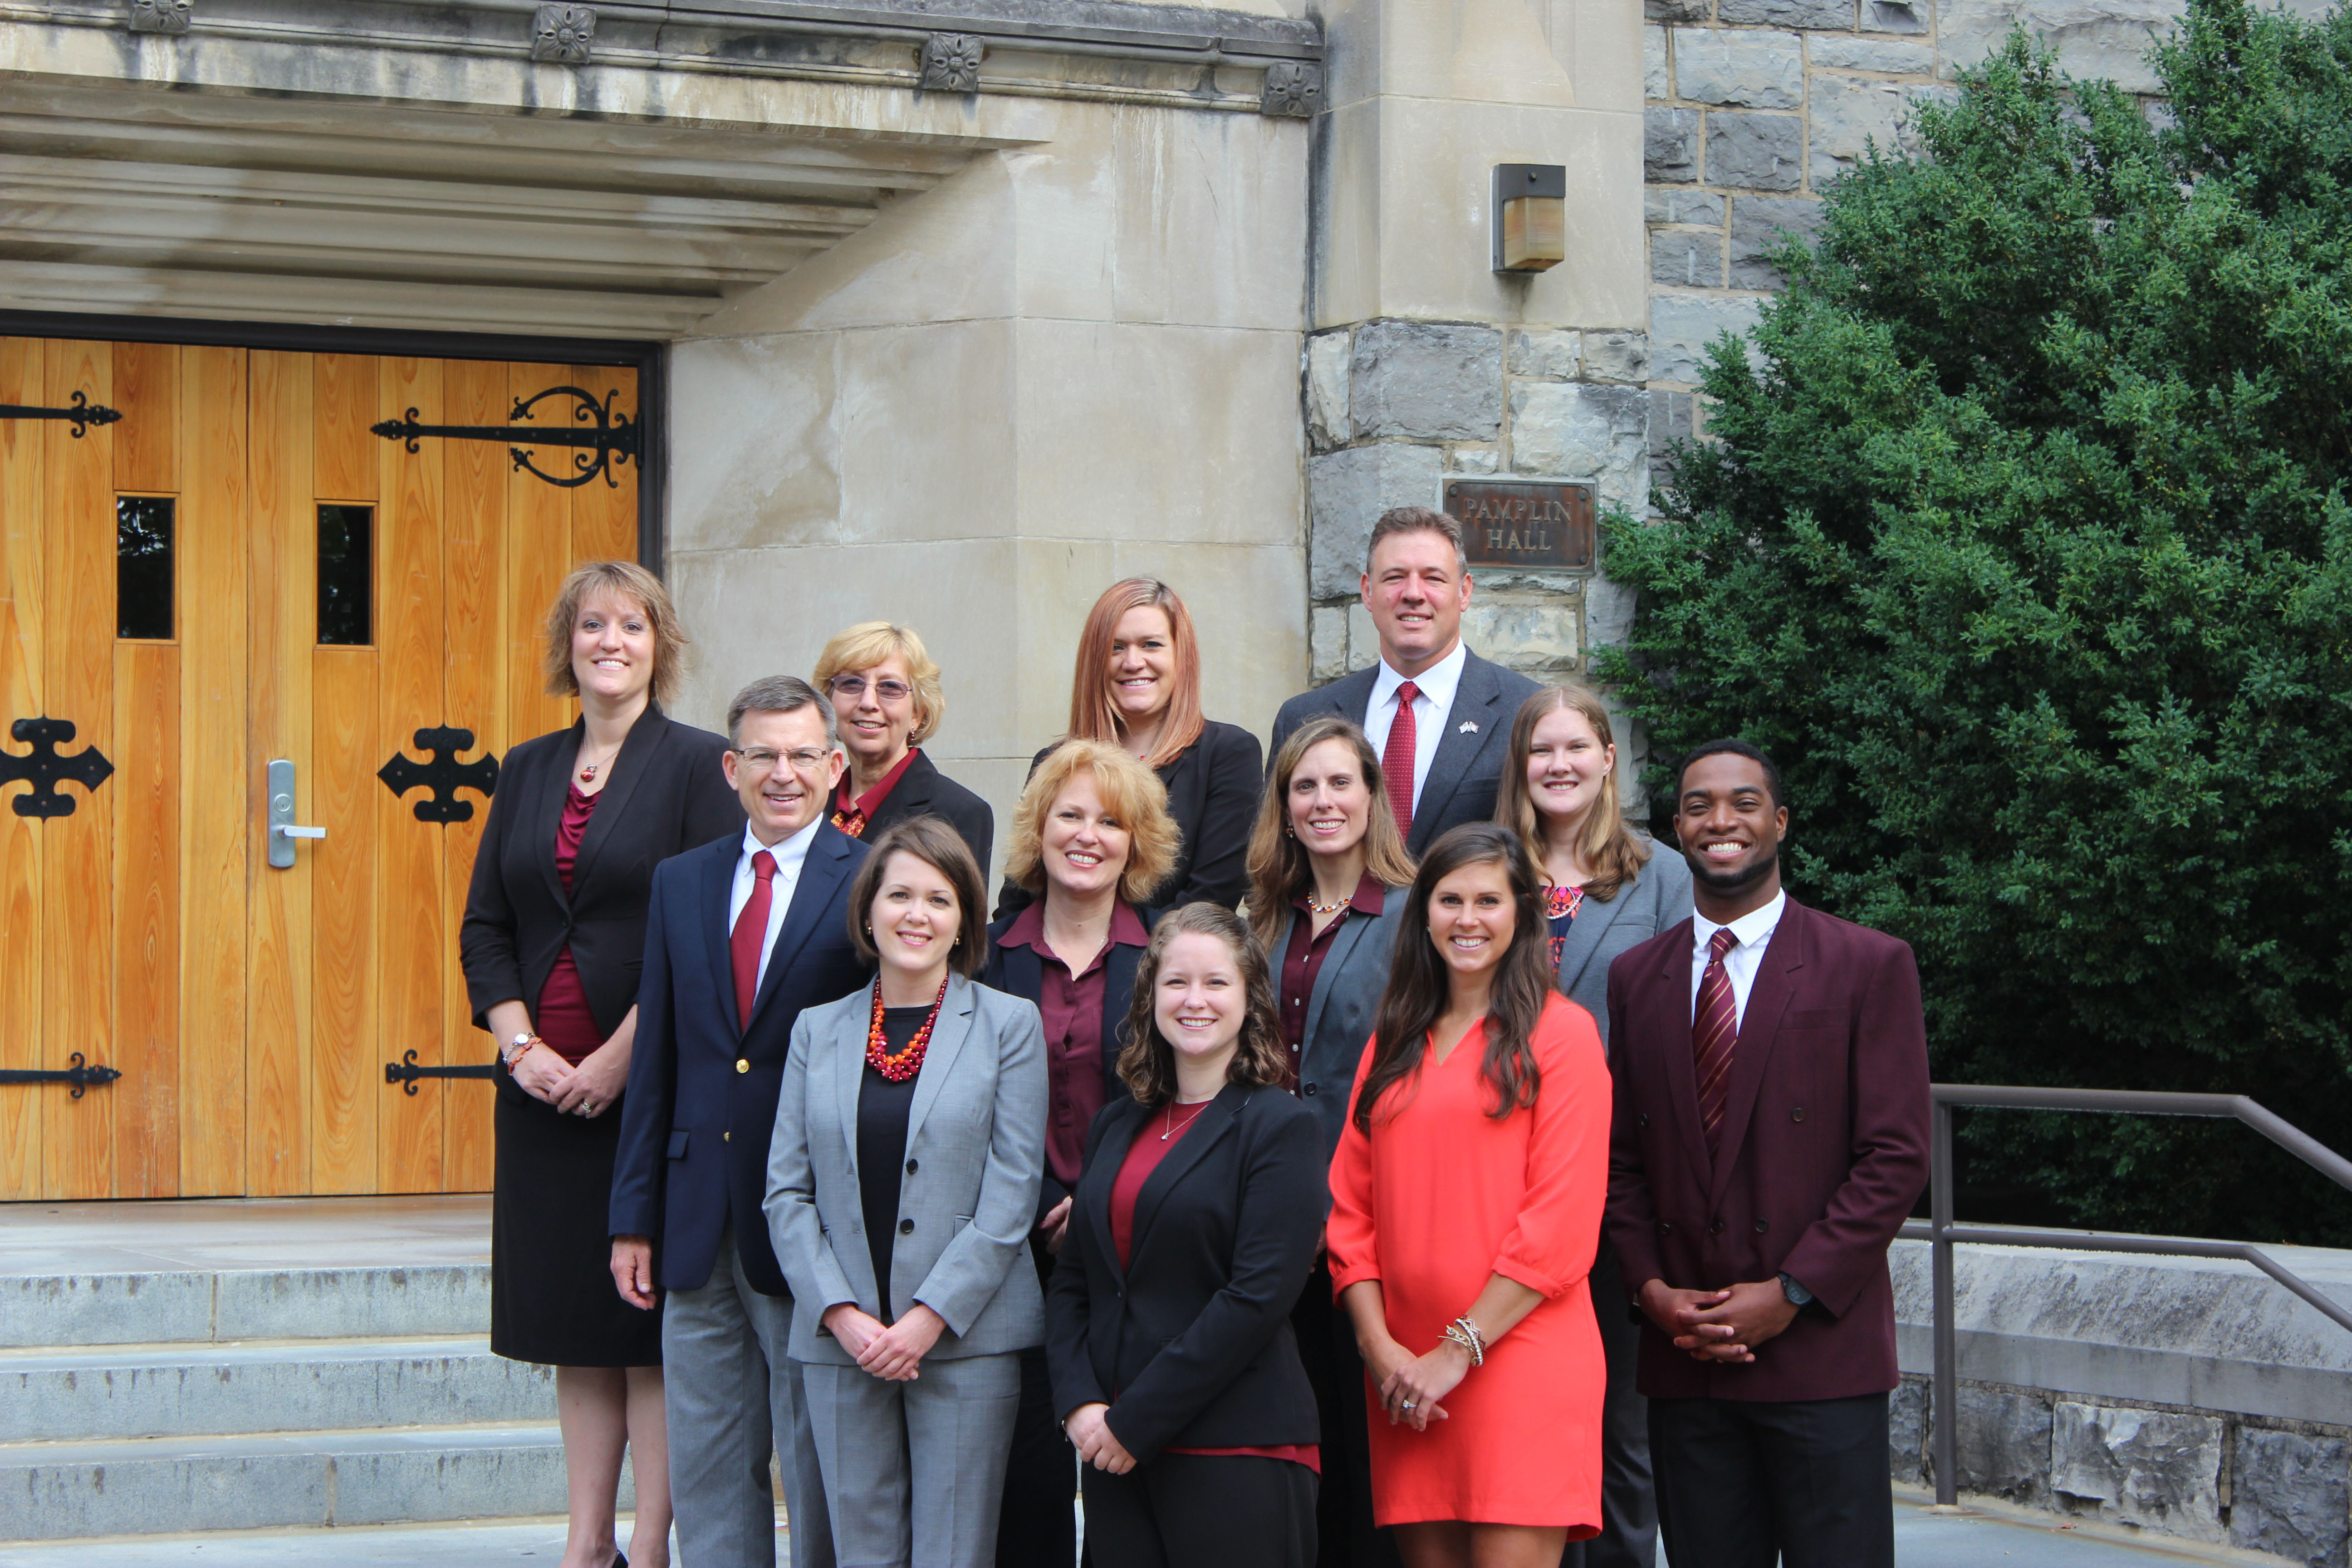 The Pamplin academic advising team pose outside Pamplin Hall. (L to R) Back Row: Leigh Anne Byrd, Lorraine Borny, Lindsey Ramey, Justin Monday; Middle Row: Keith Gay, Jennifer Clevenger, Kirsten Mosby, Christina Minford; Front Row: Kelley Ausman, Alison Wade, Katie Wells, Lorenzo Williams